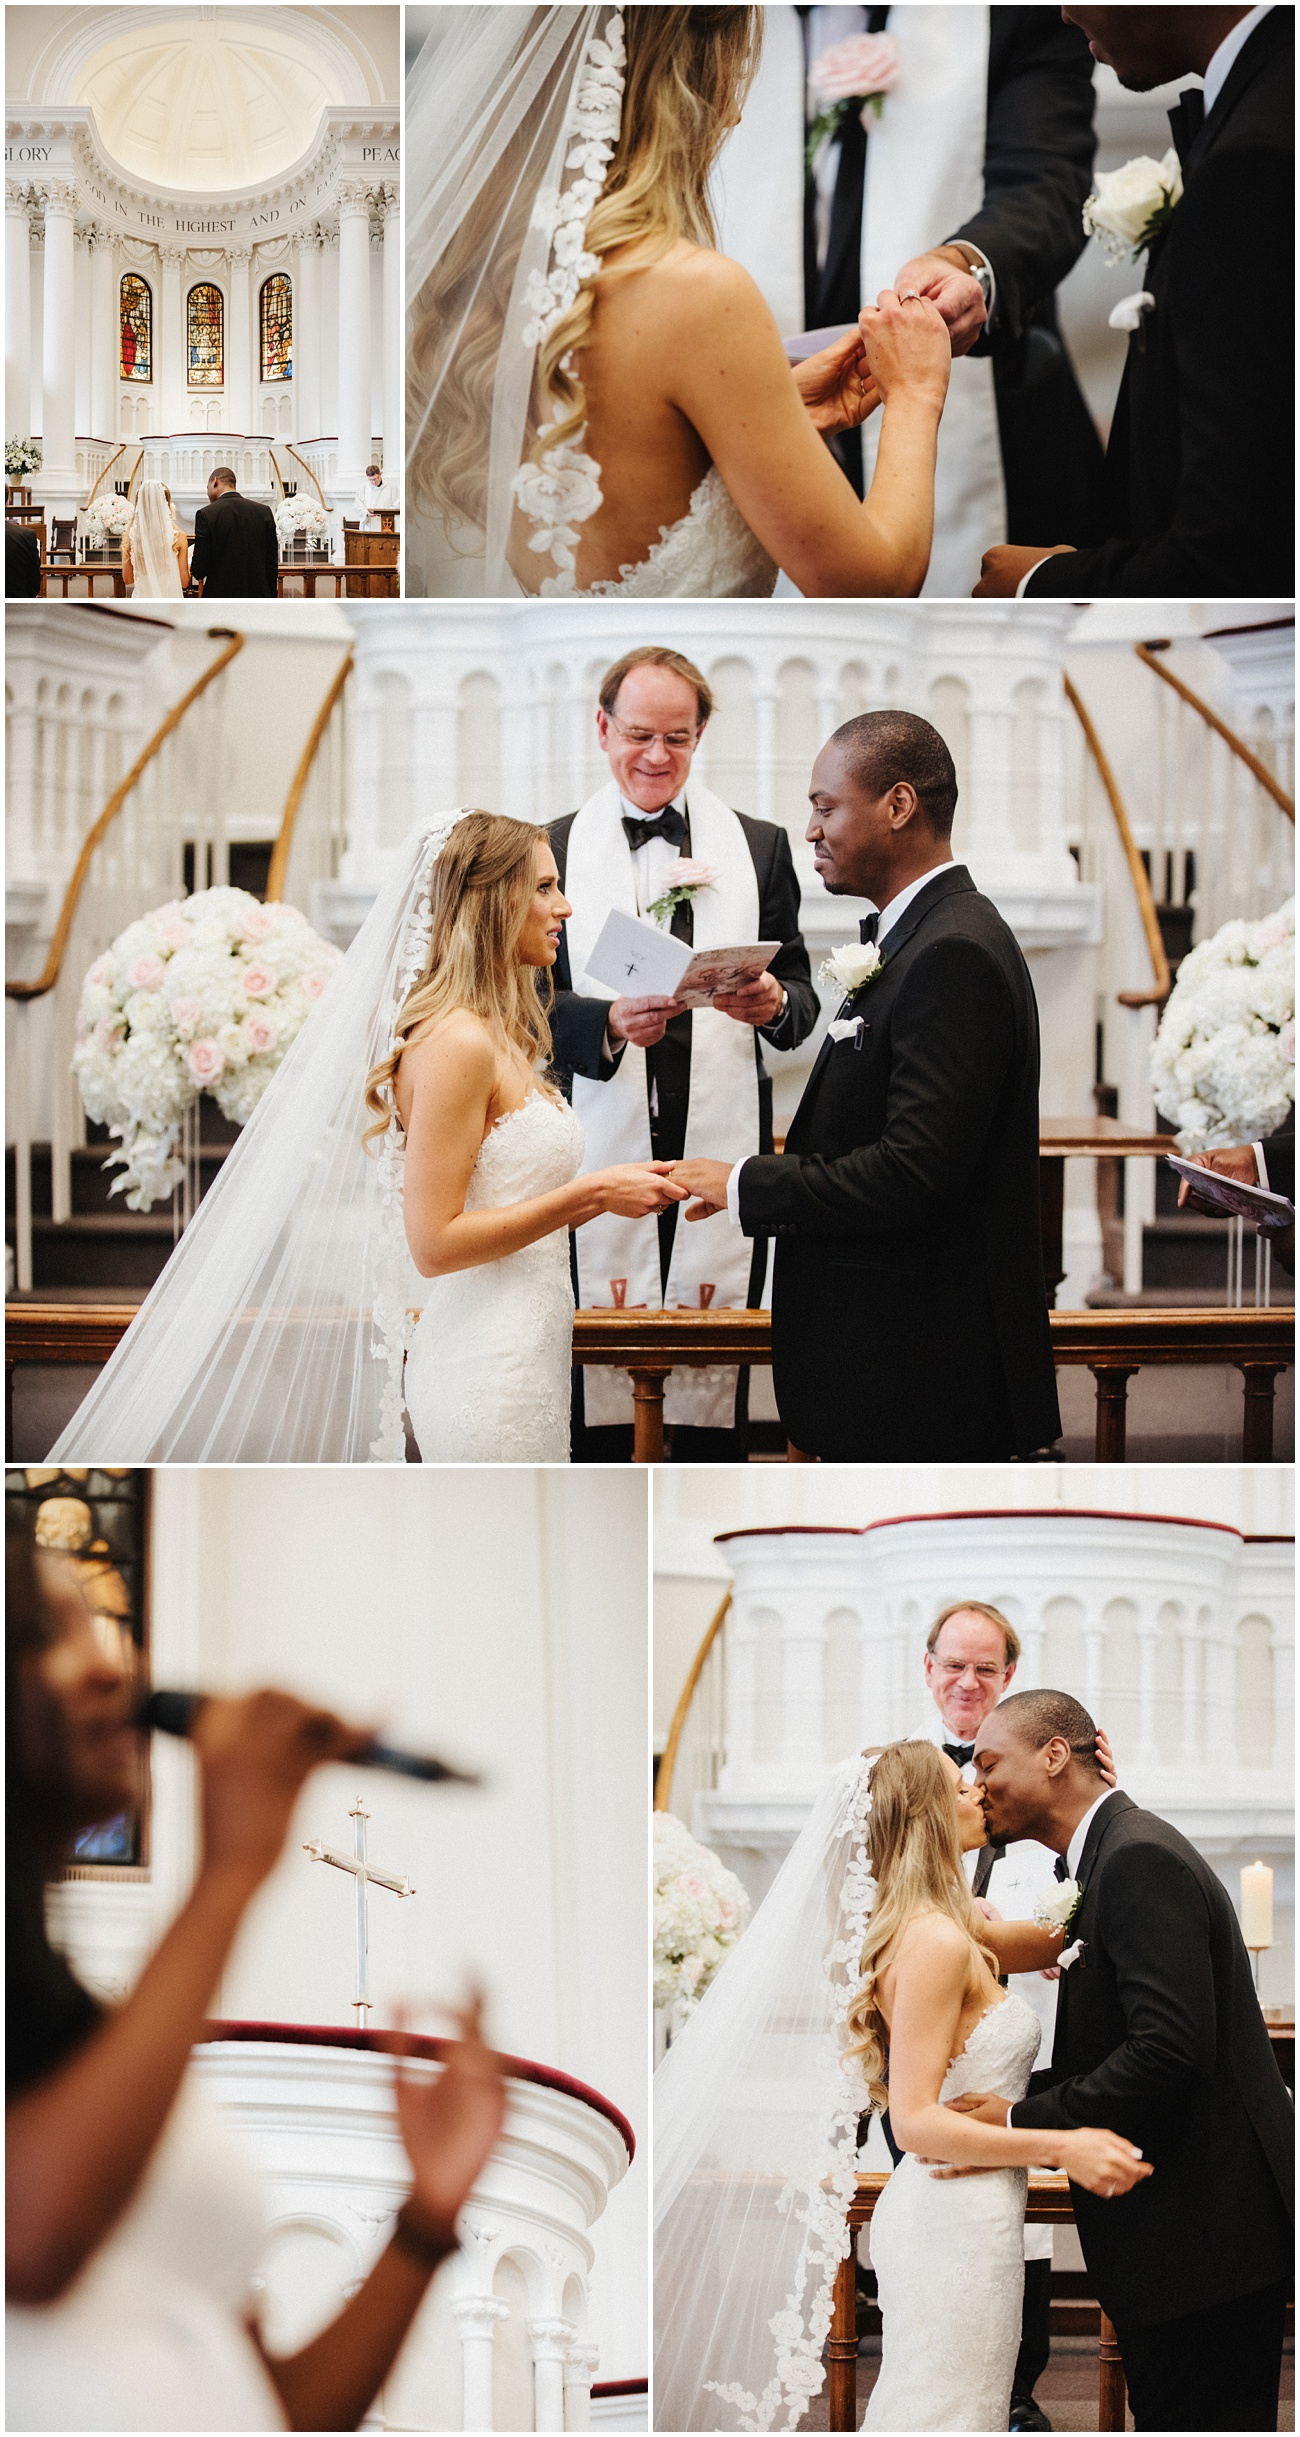 The bride and groom exchange wedding rings during the ceremony and then kiss while a guest sings